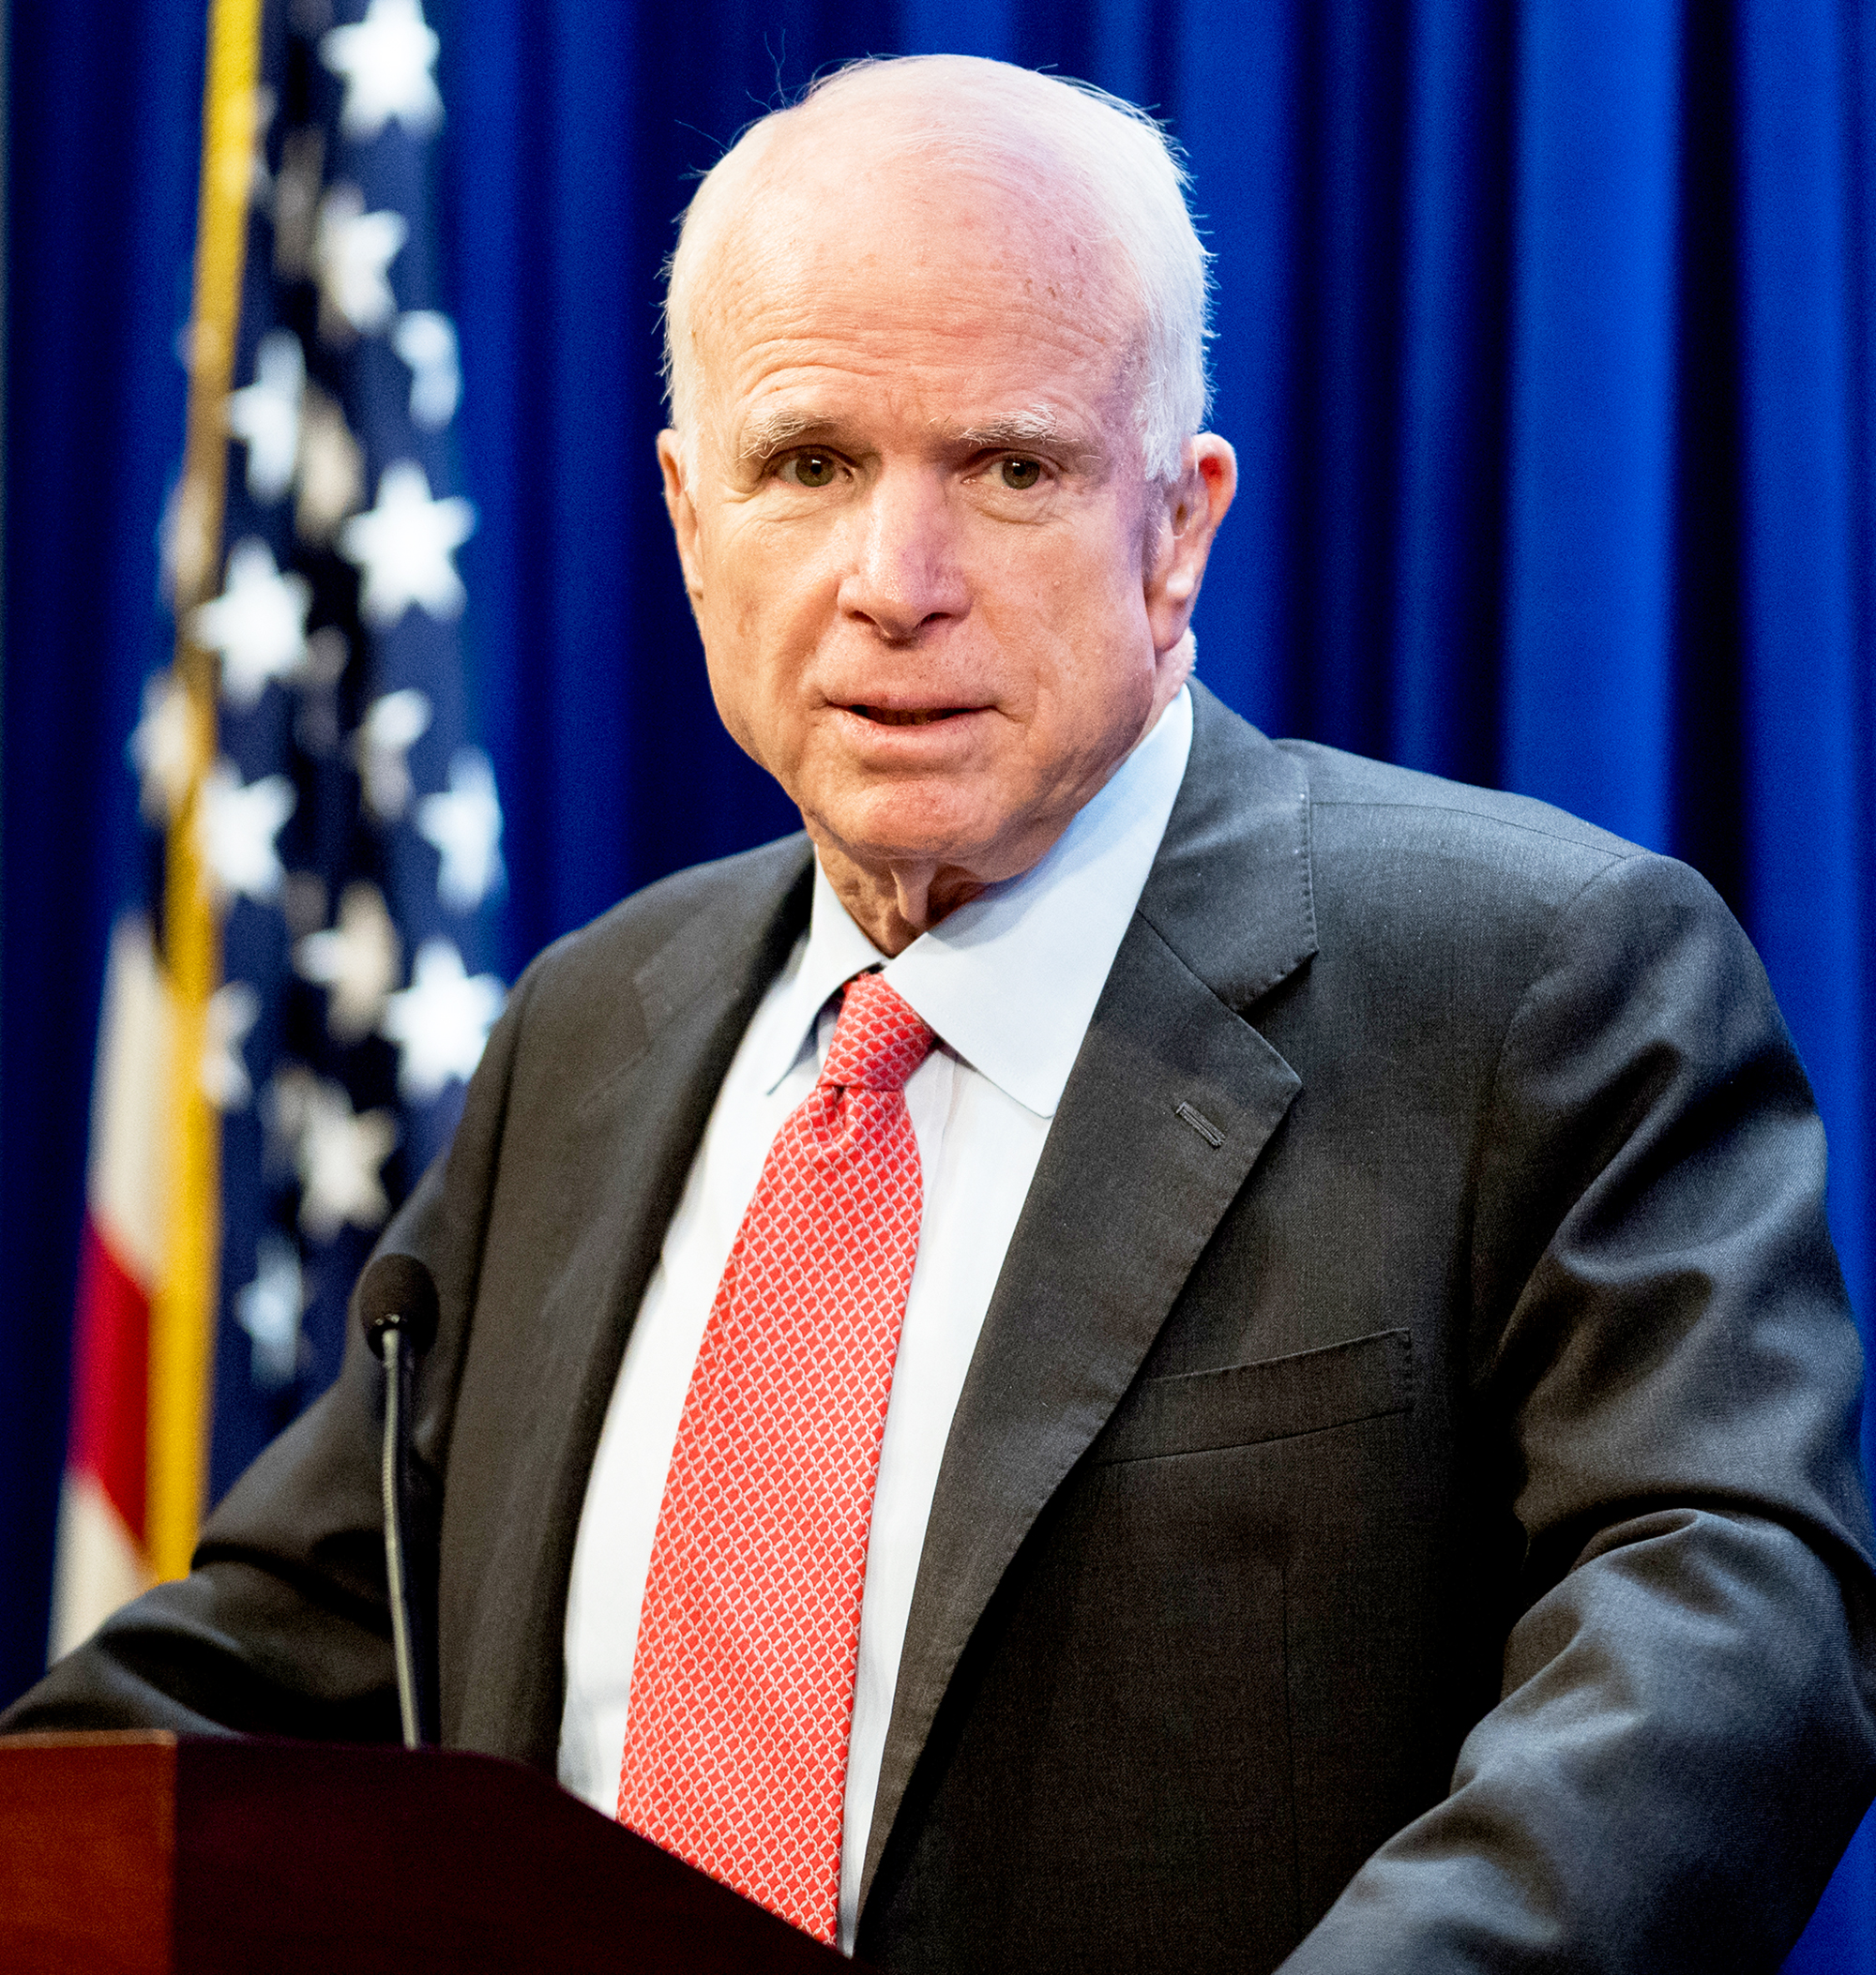 Senator John McCain hospitalized for intestinal infection